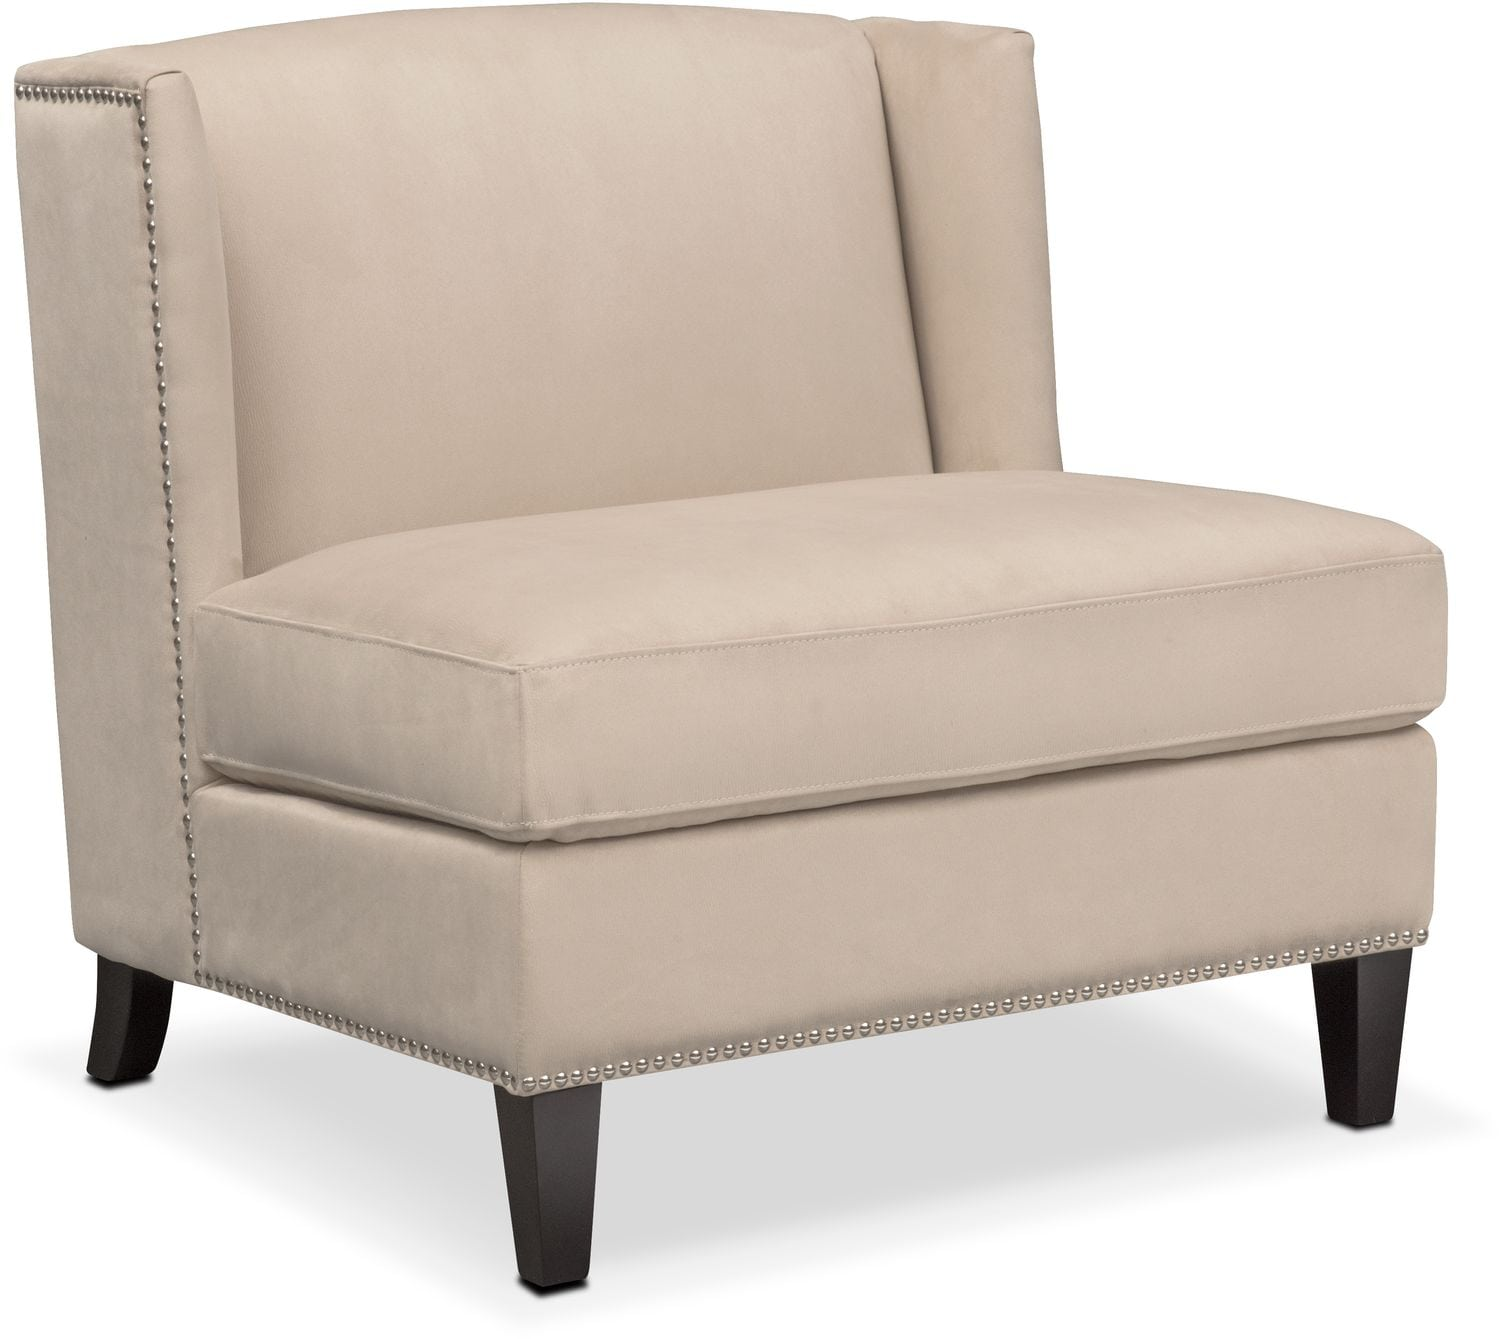 Living Room Furniture - Torrance Accent Chair - Taupe